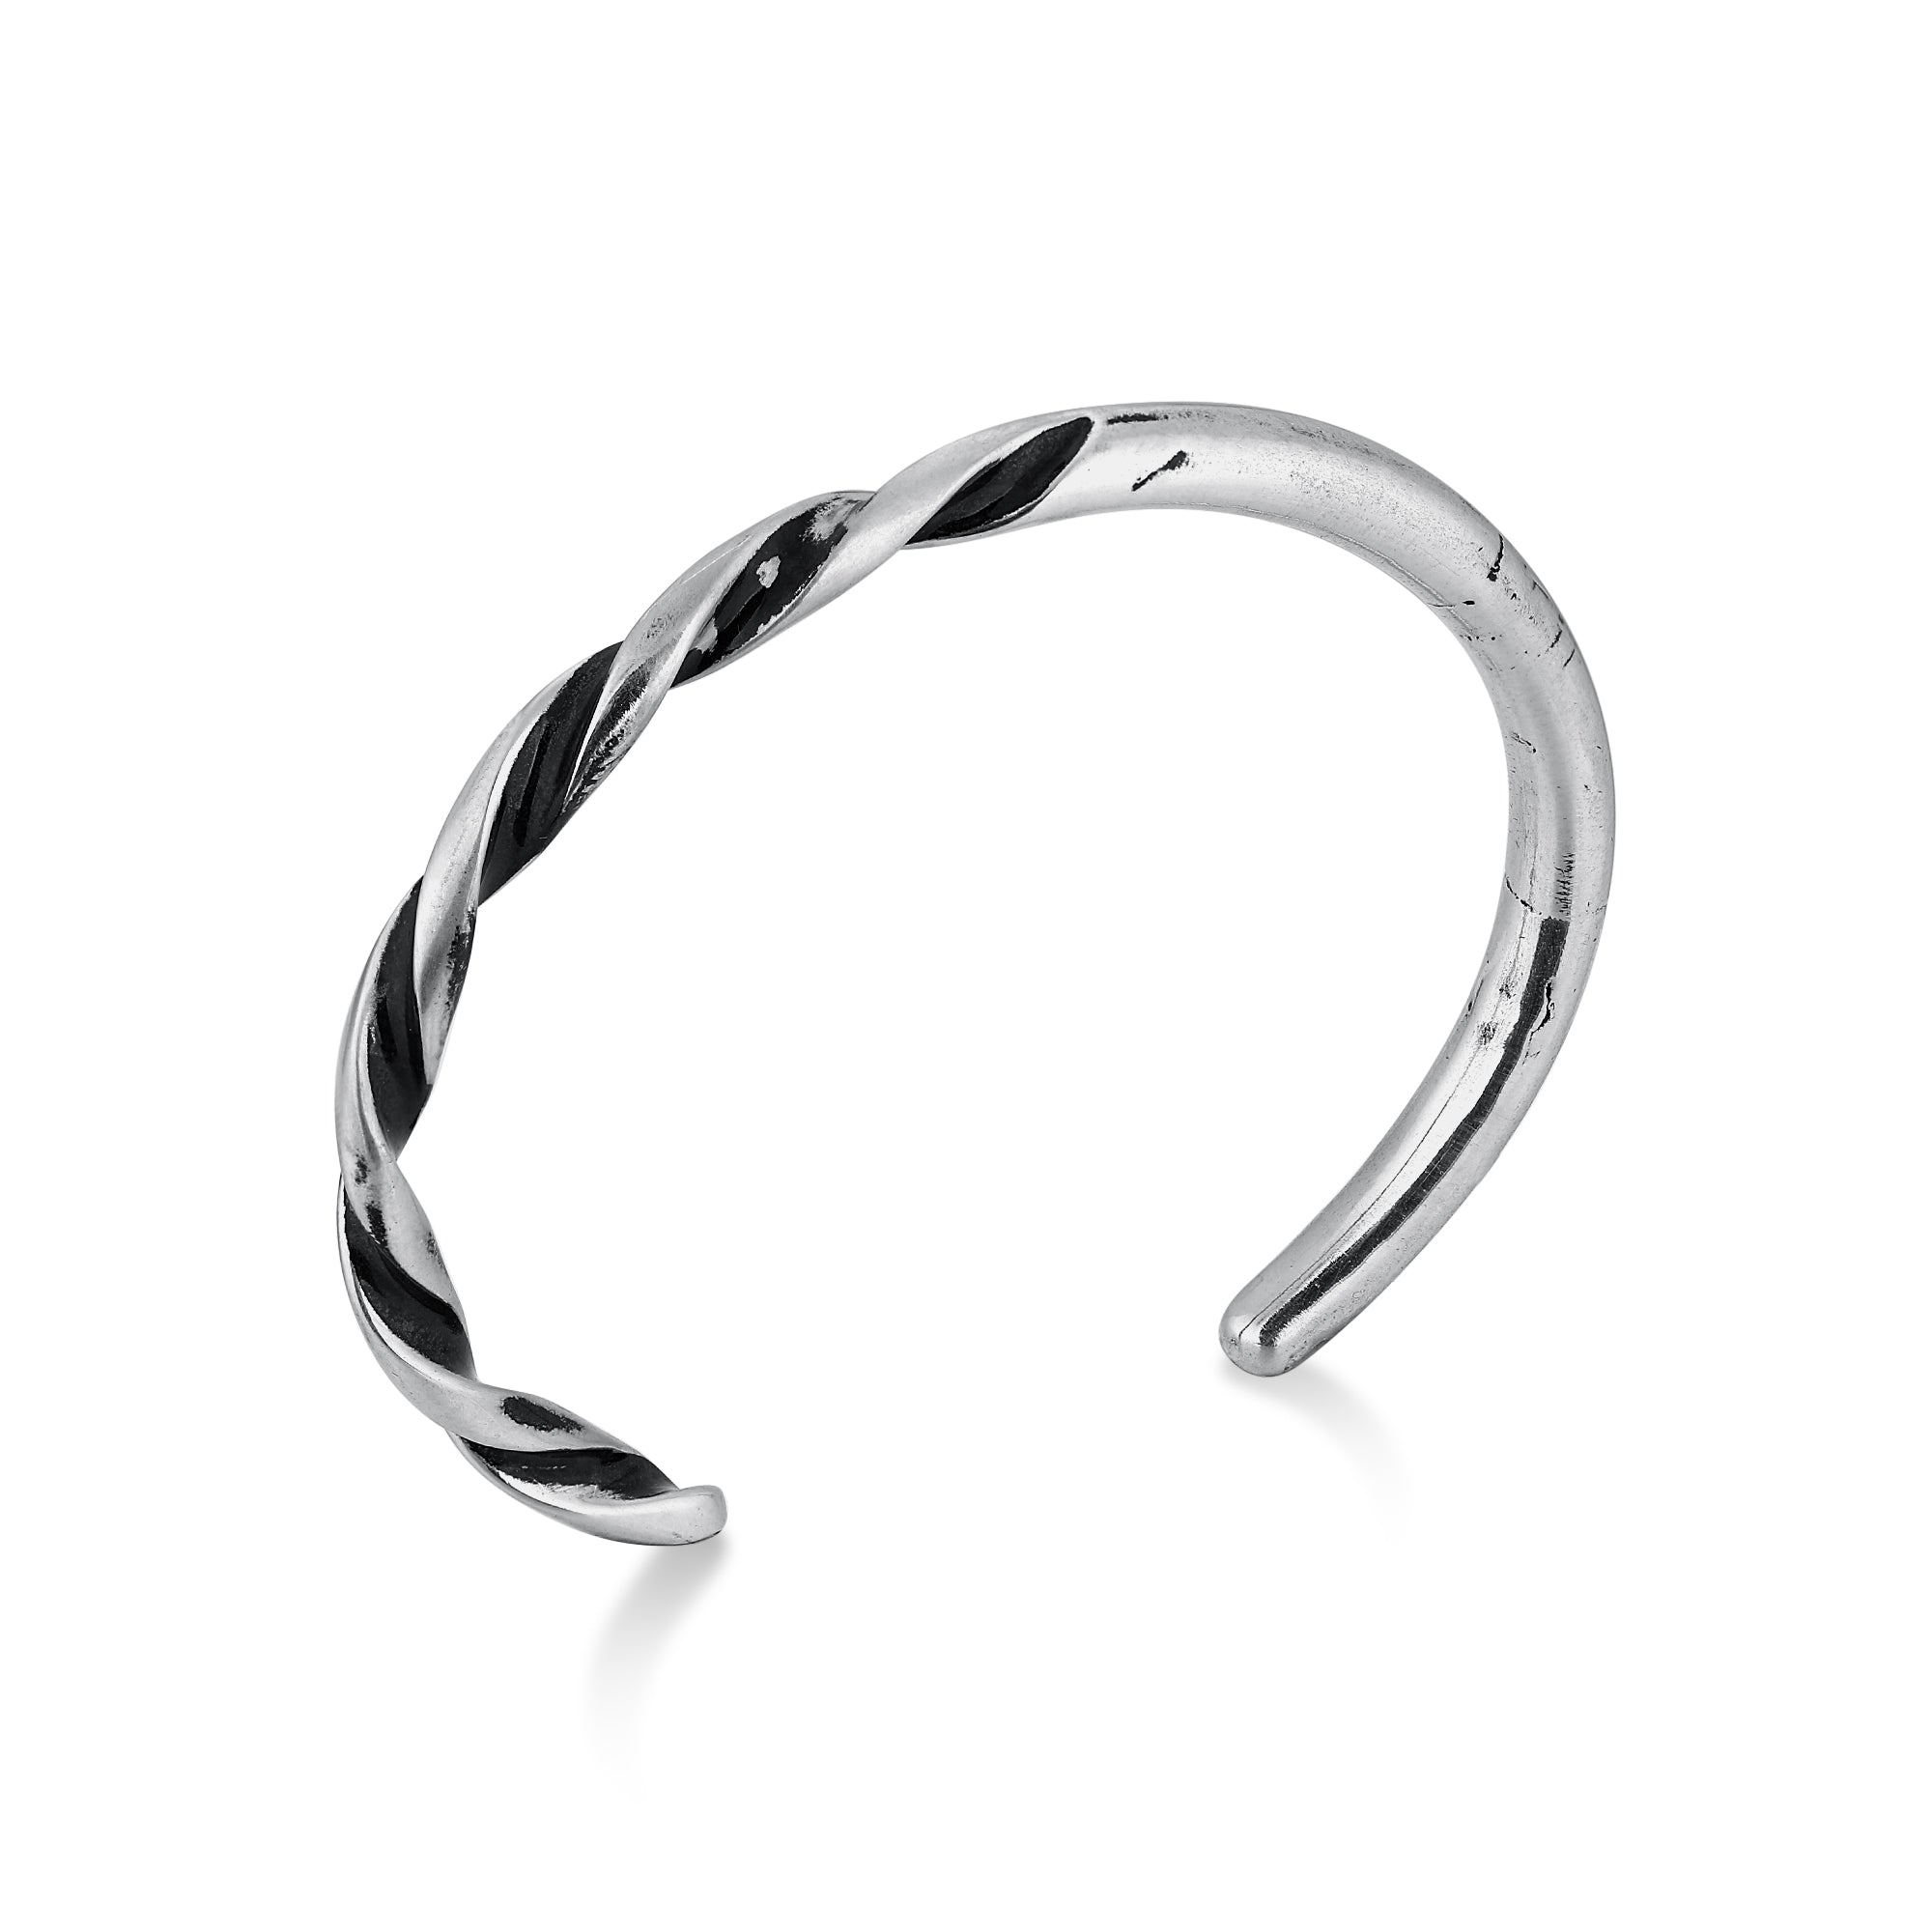 Silver Narrow Cuff Bracelet with Twisted Multi Shaded Surface